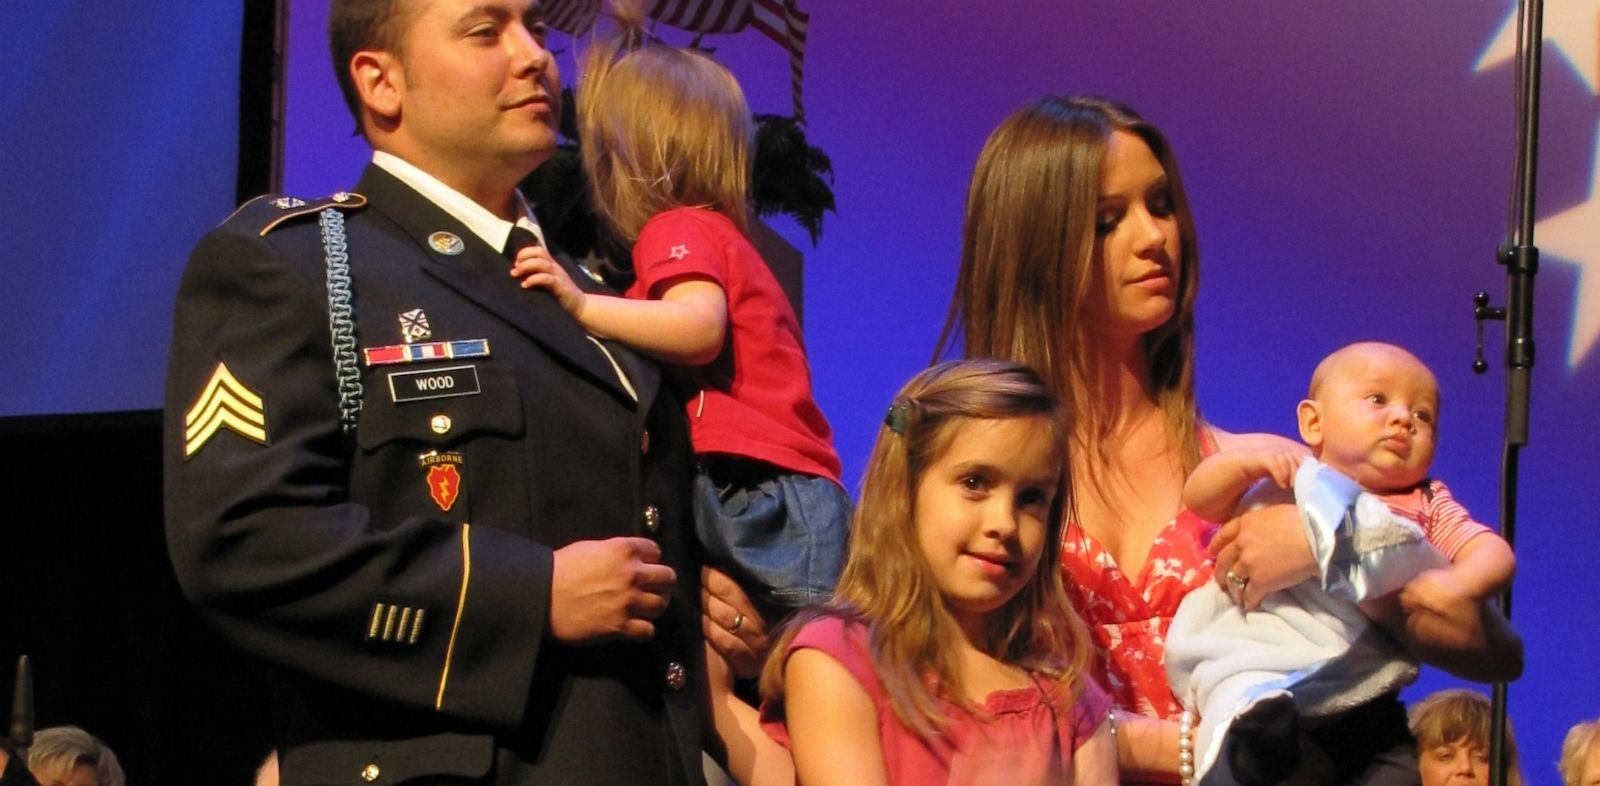 PHOTO: Brian Wood, left, pictured with his family.